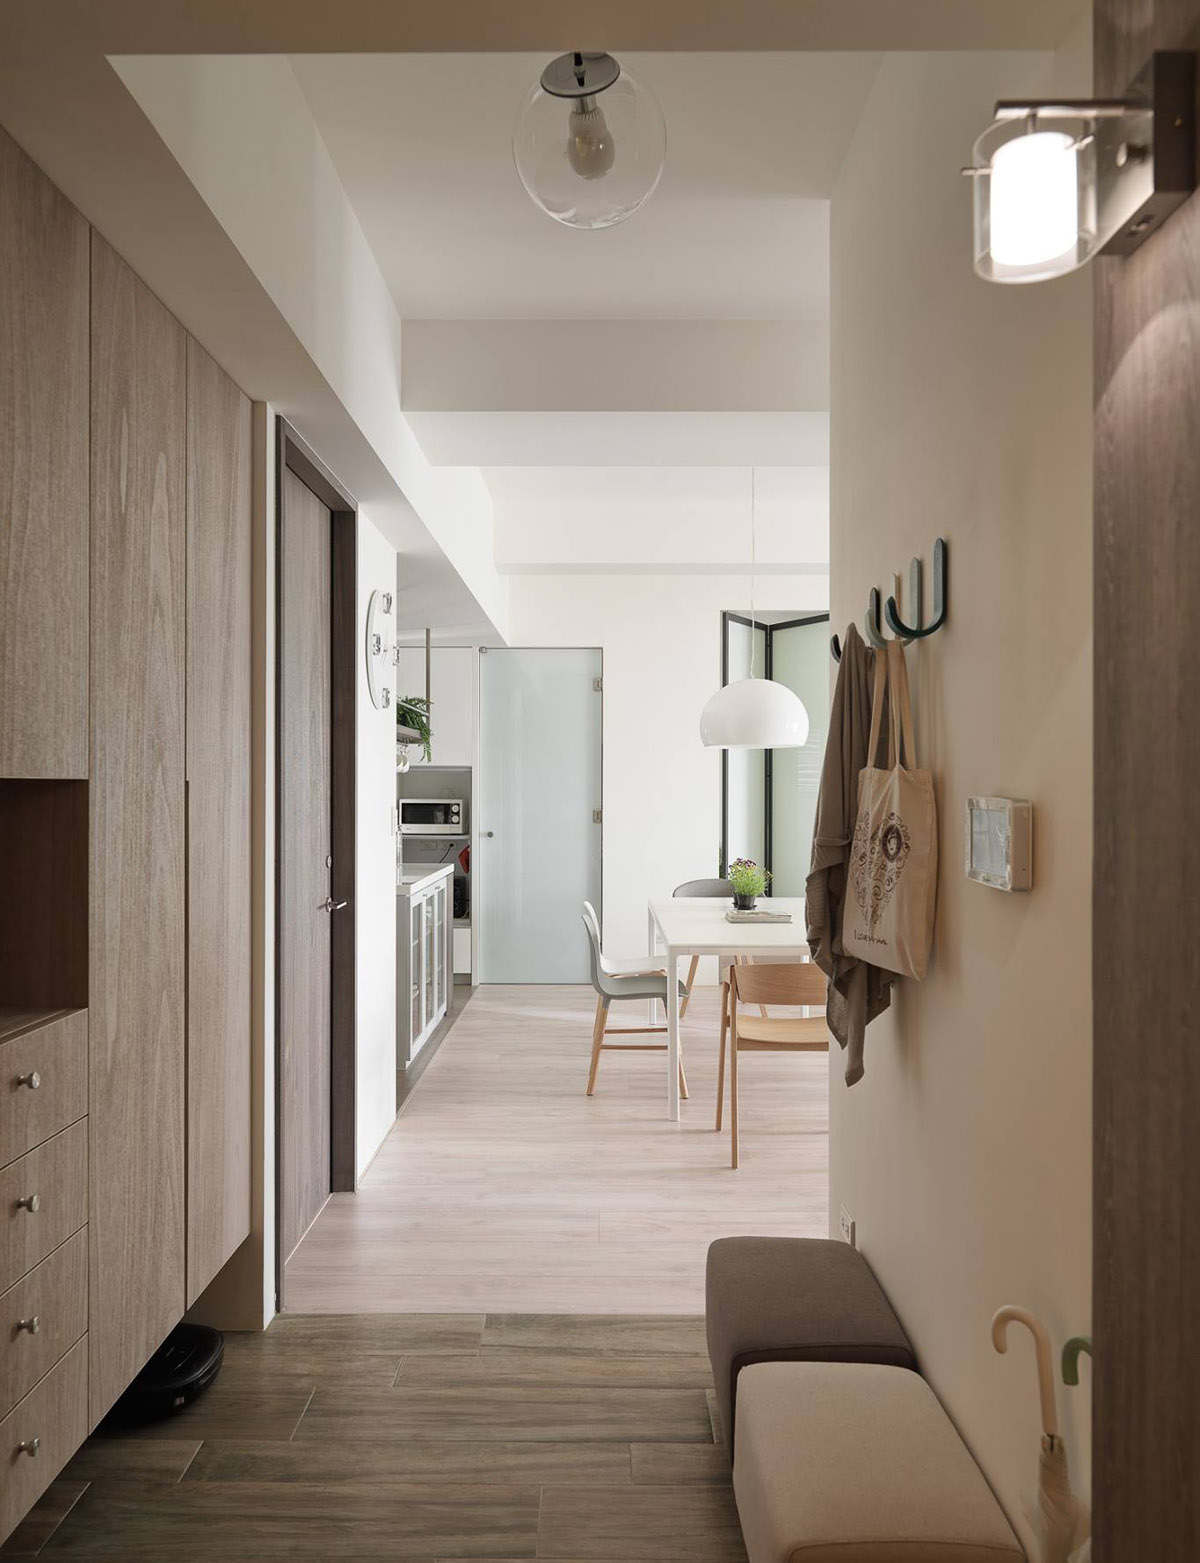 A Soothing, Earthy Color Scheme for a 3 Bedroom Home With Study [Includes Floor Plans] images 14